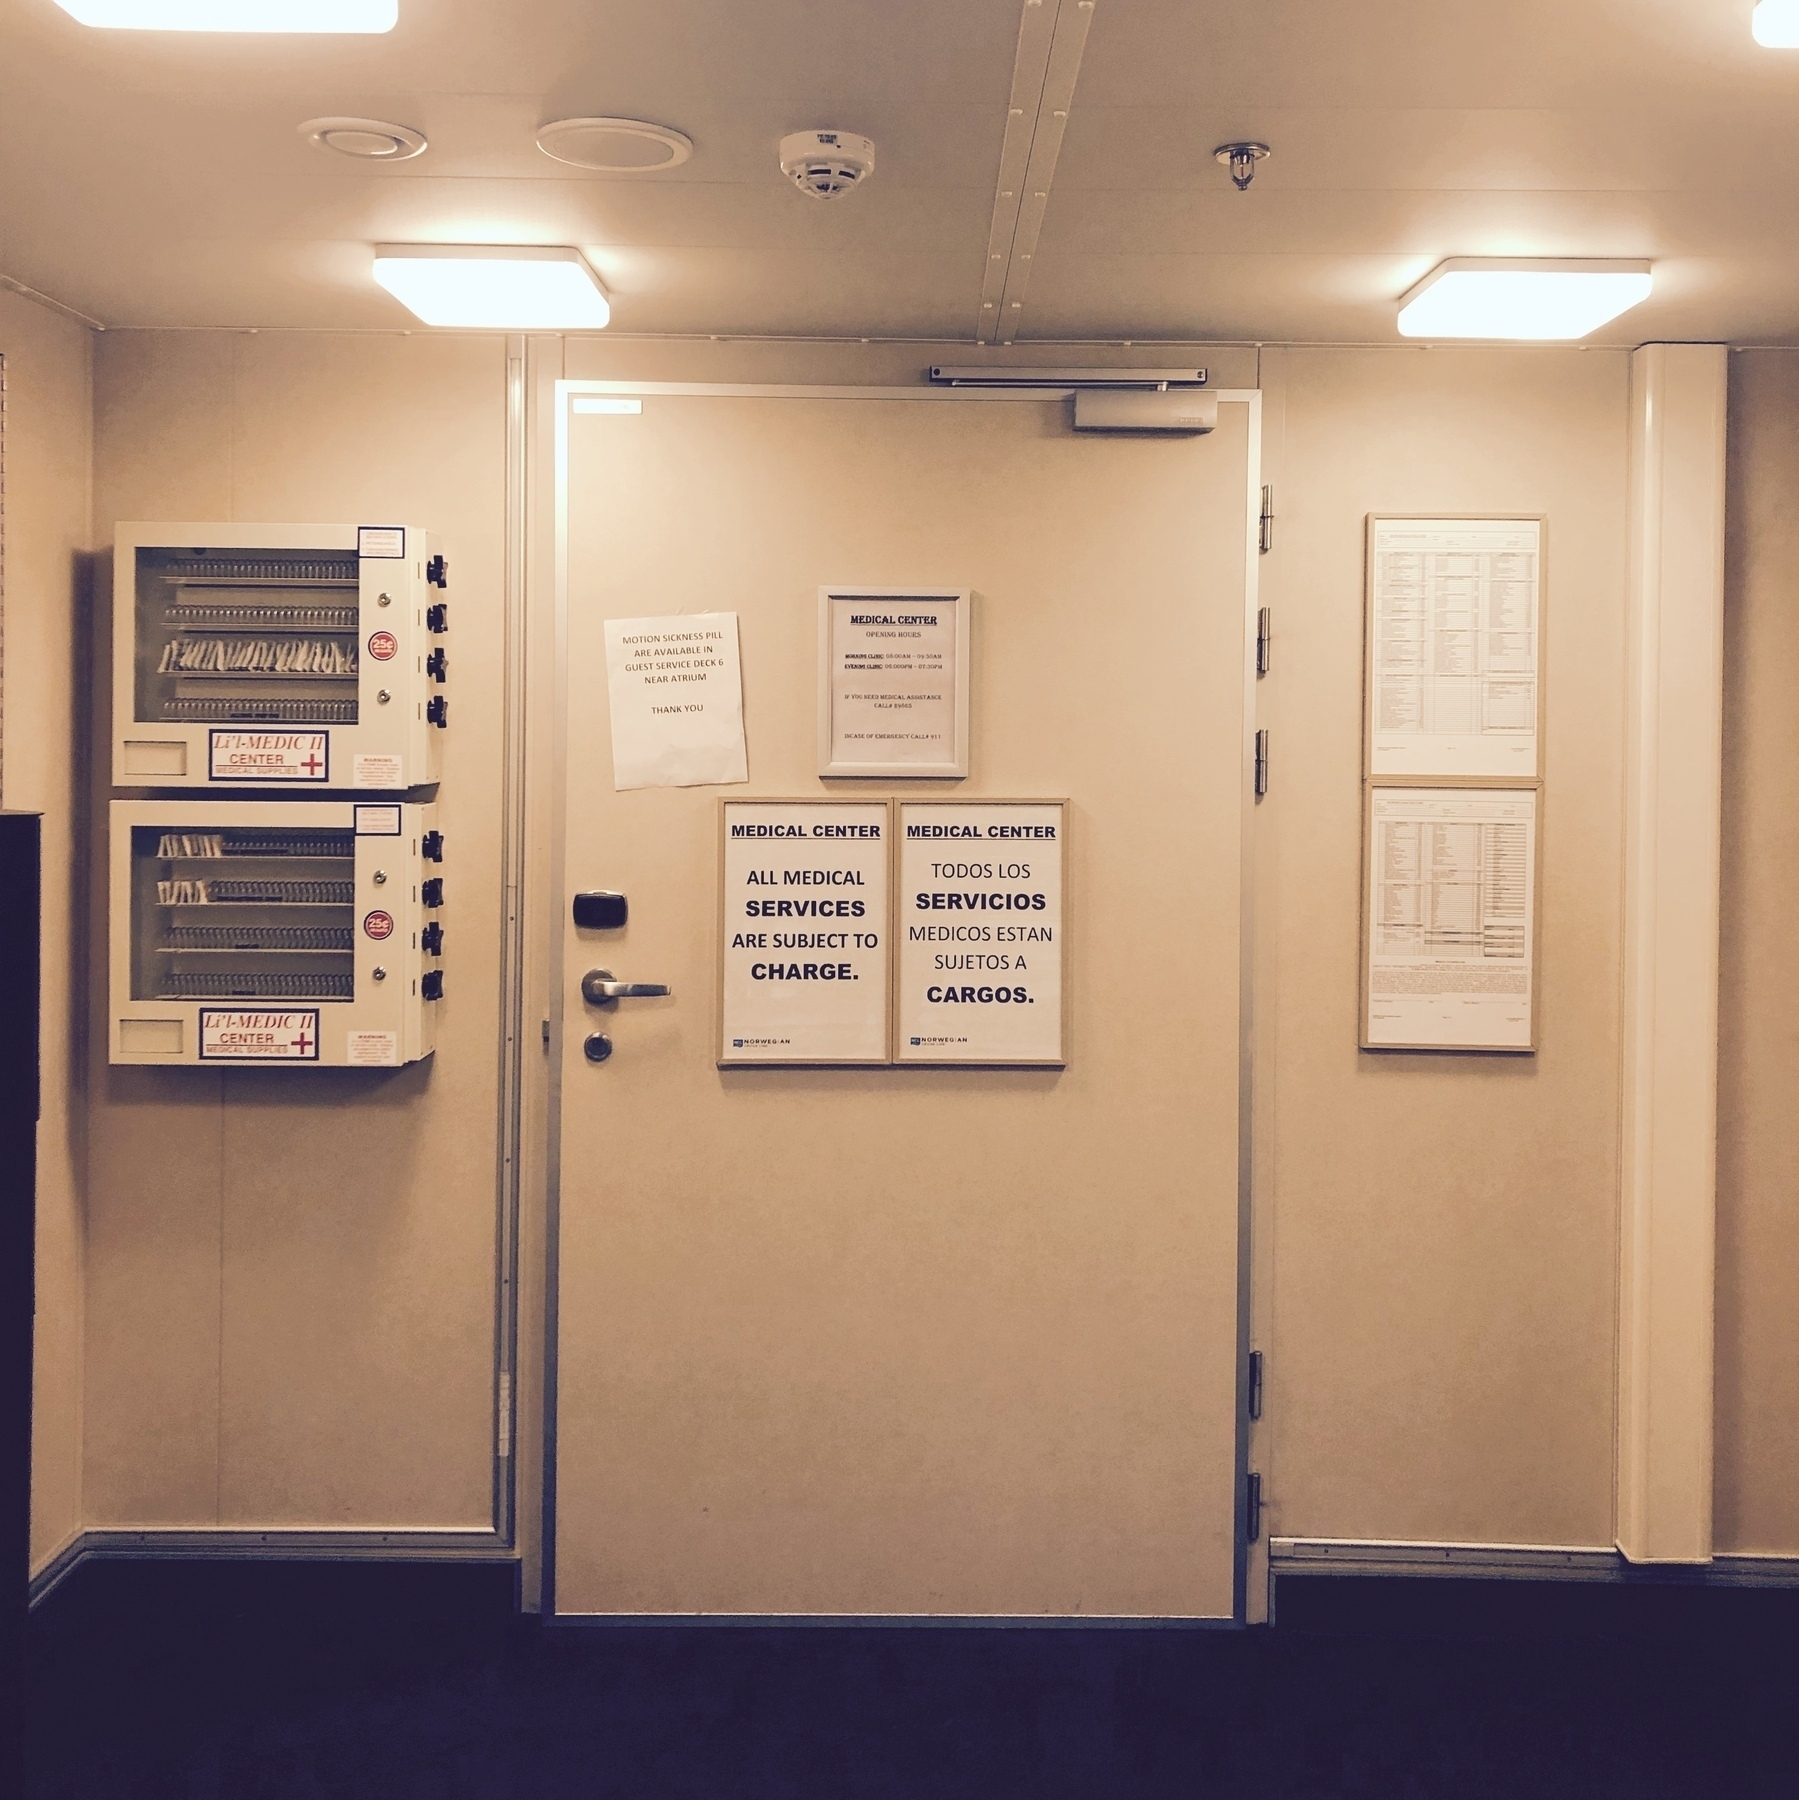 A yellowish photo of a cruise ship's medical center door. Signs indicate that services will incur a fee. Signs are in English and Spanish.